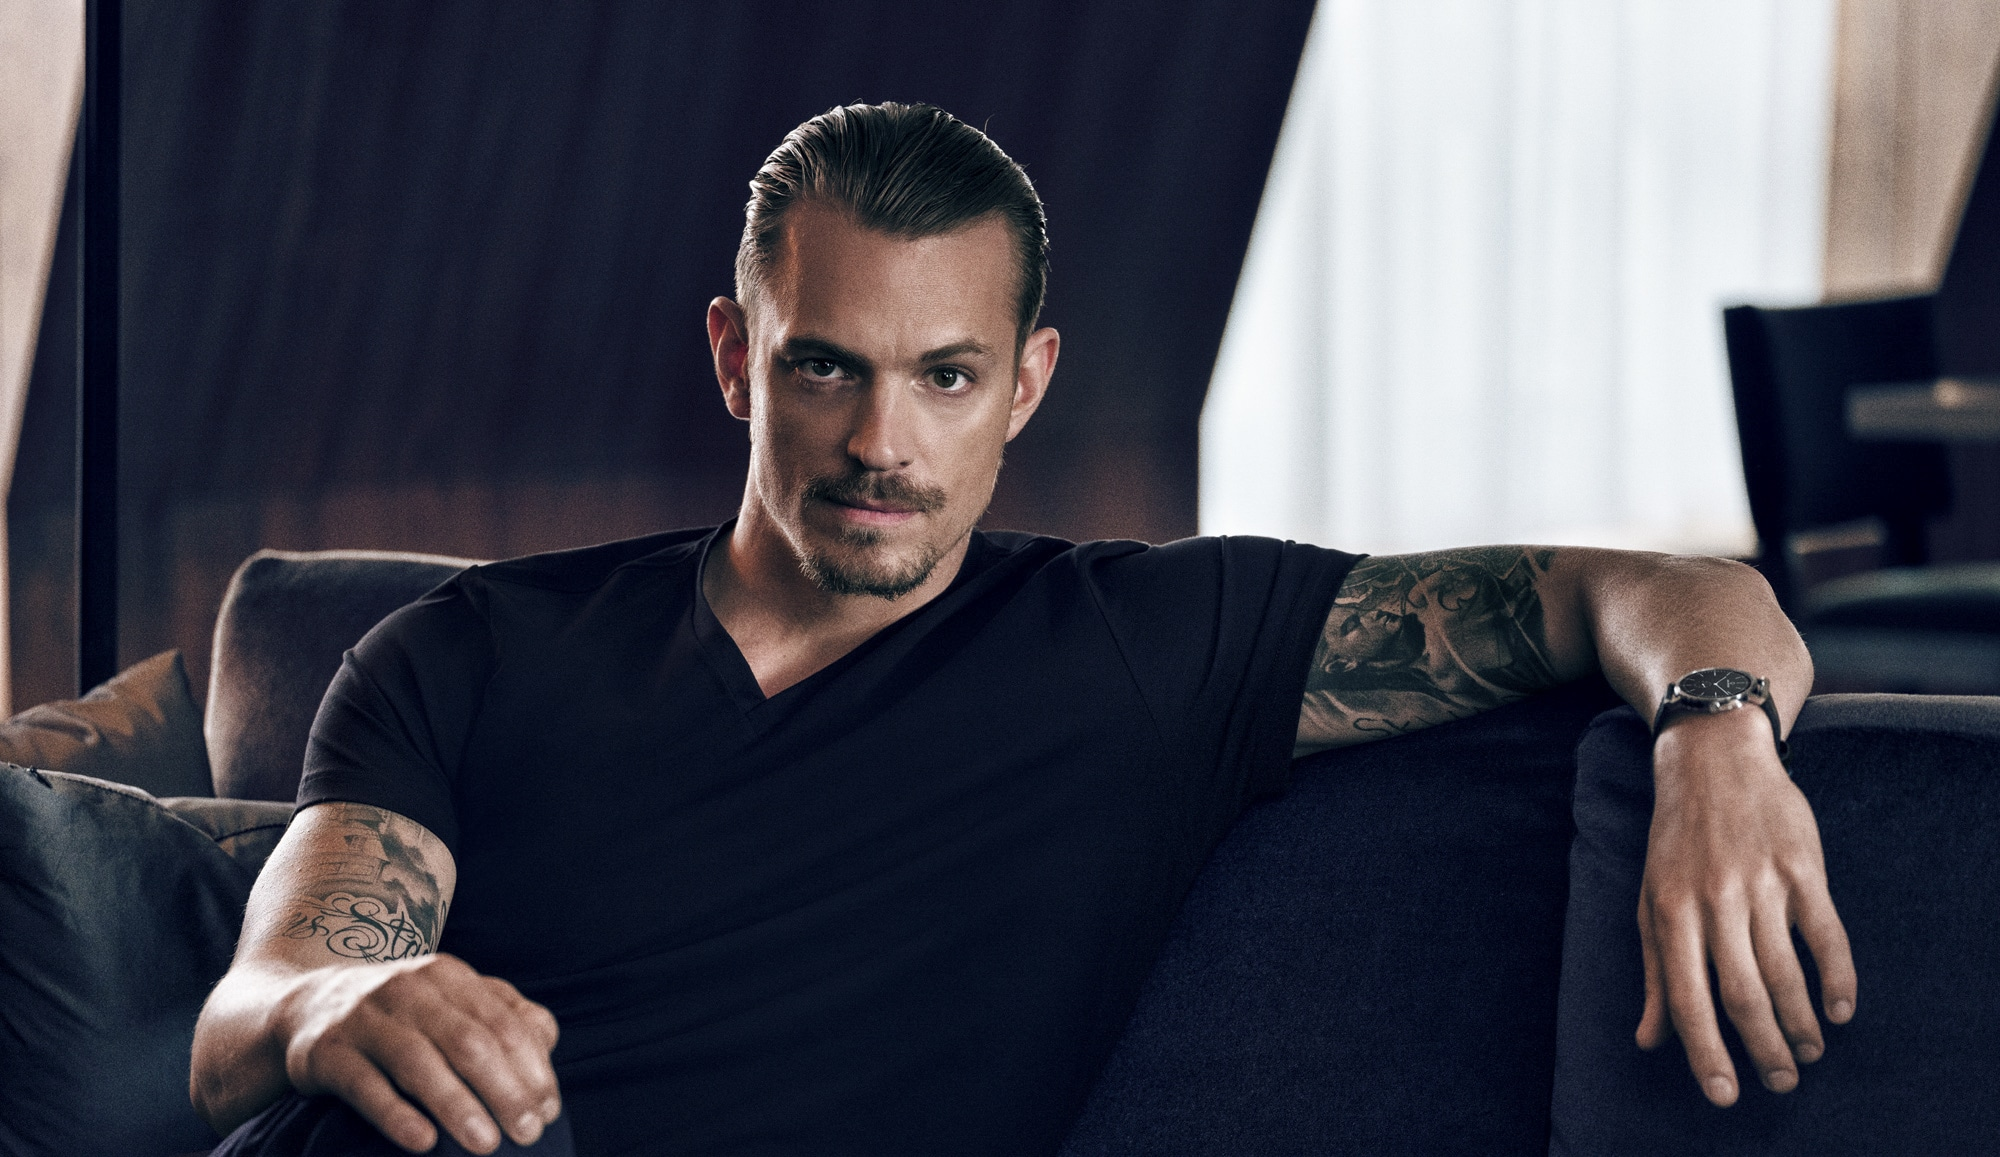 Altered Carbon Male Frontal joel kinnaman bares his buns in netflix series 'altered